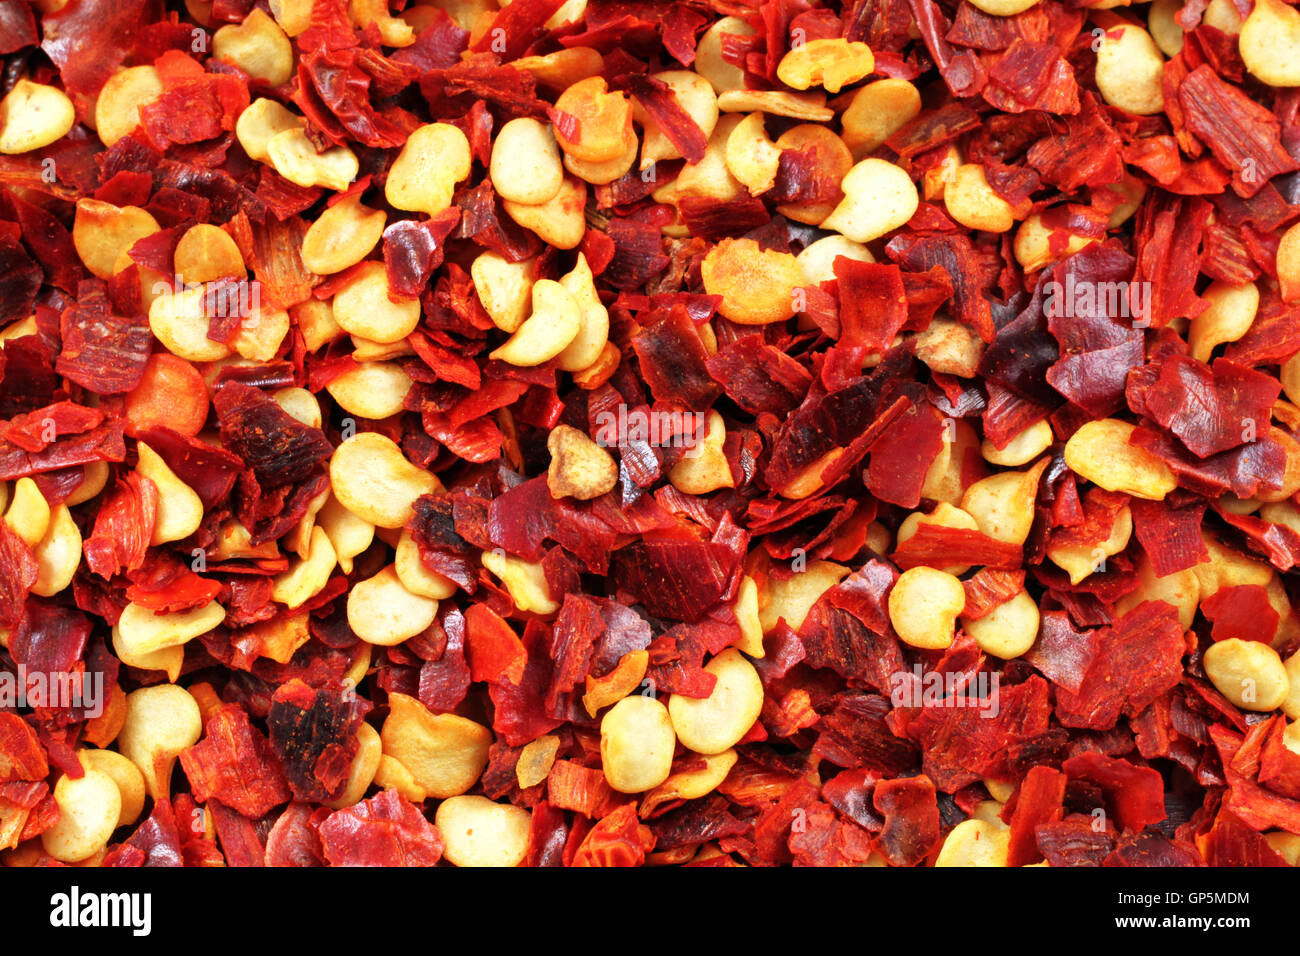 An extremely close up image of crushed red chilis - Stock Image